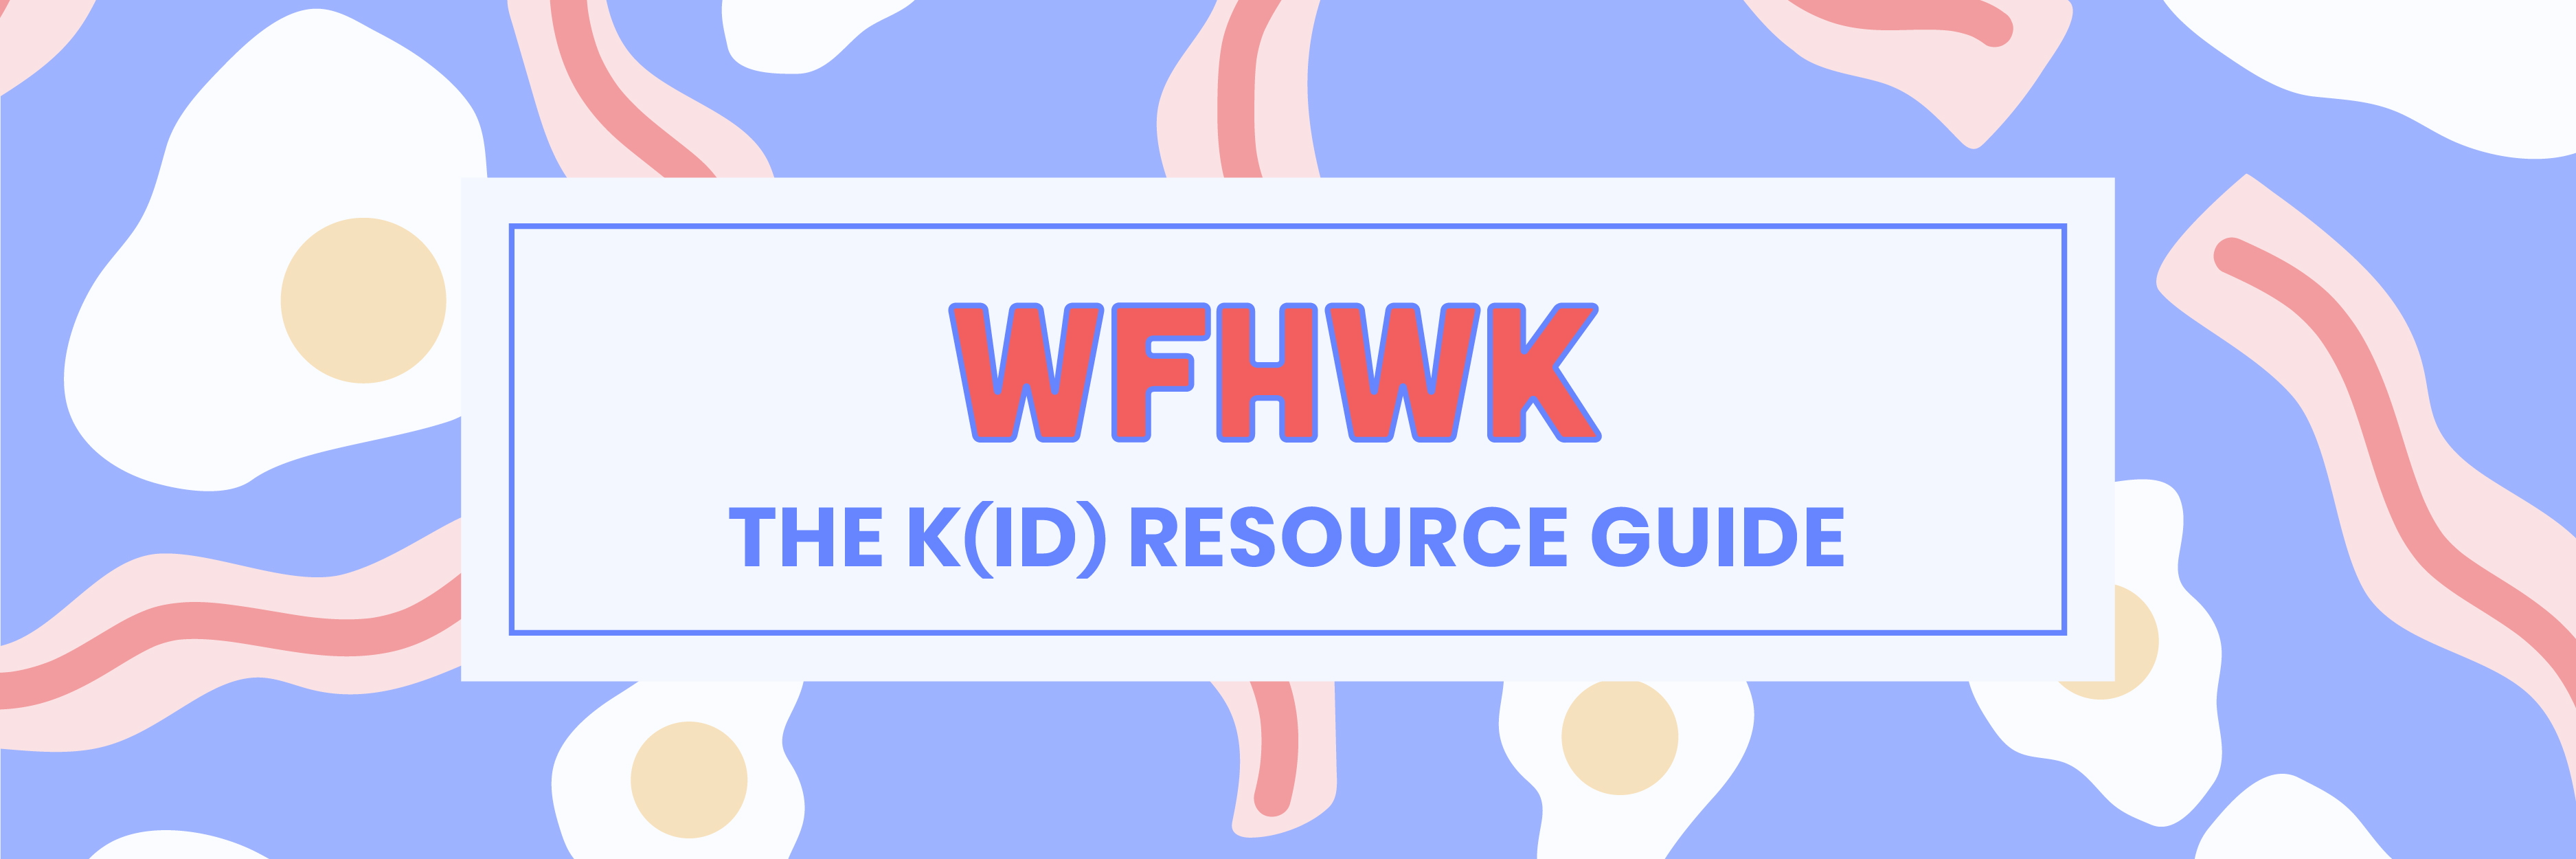 WFHWK - what are the kids going to do!?